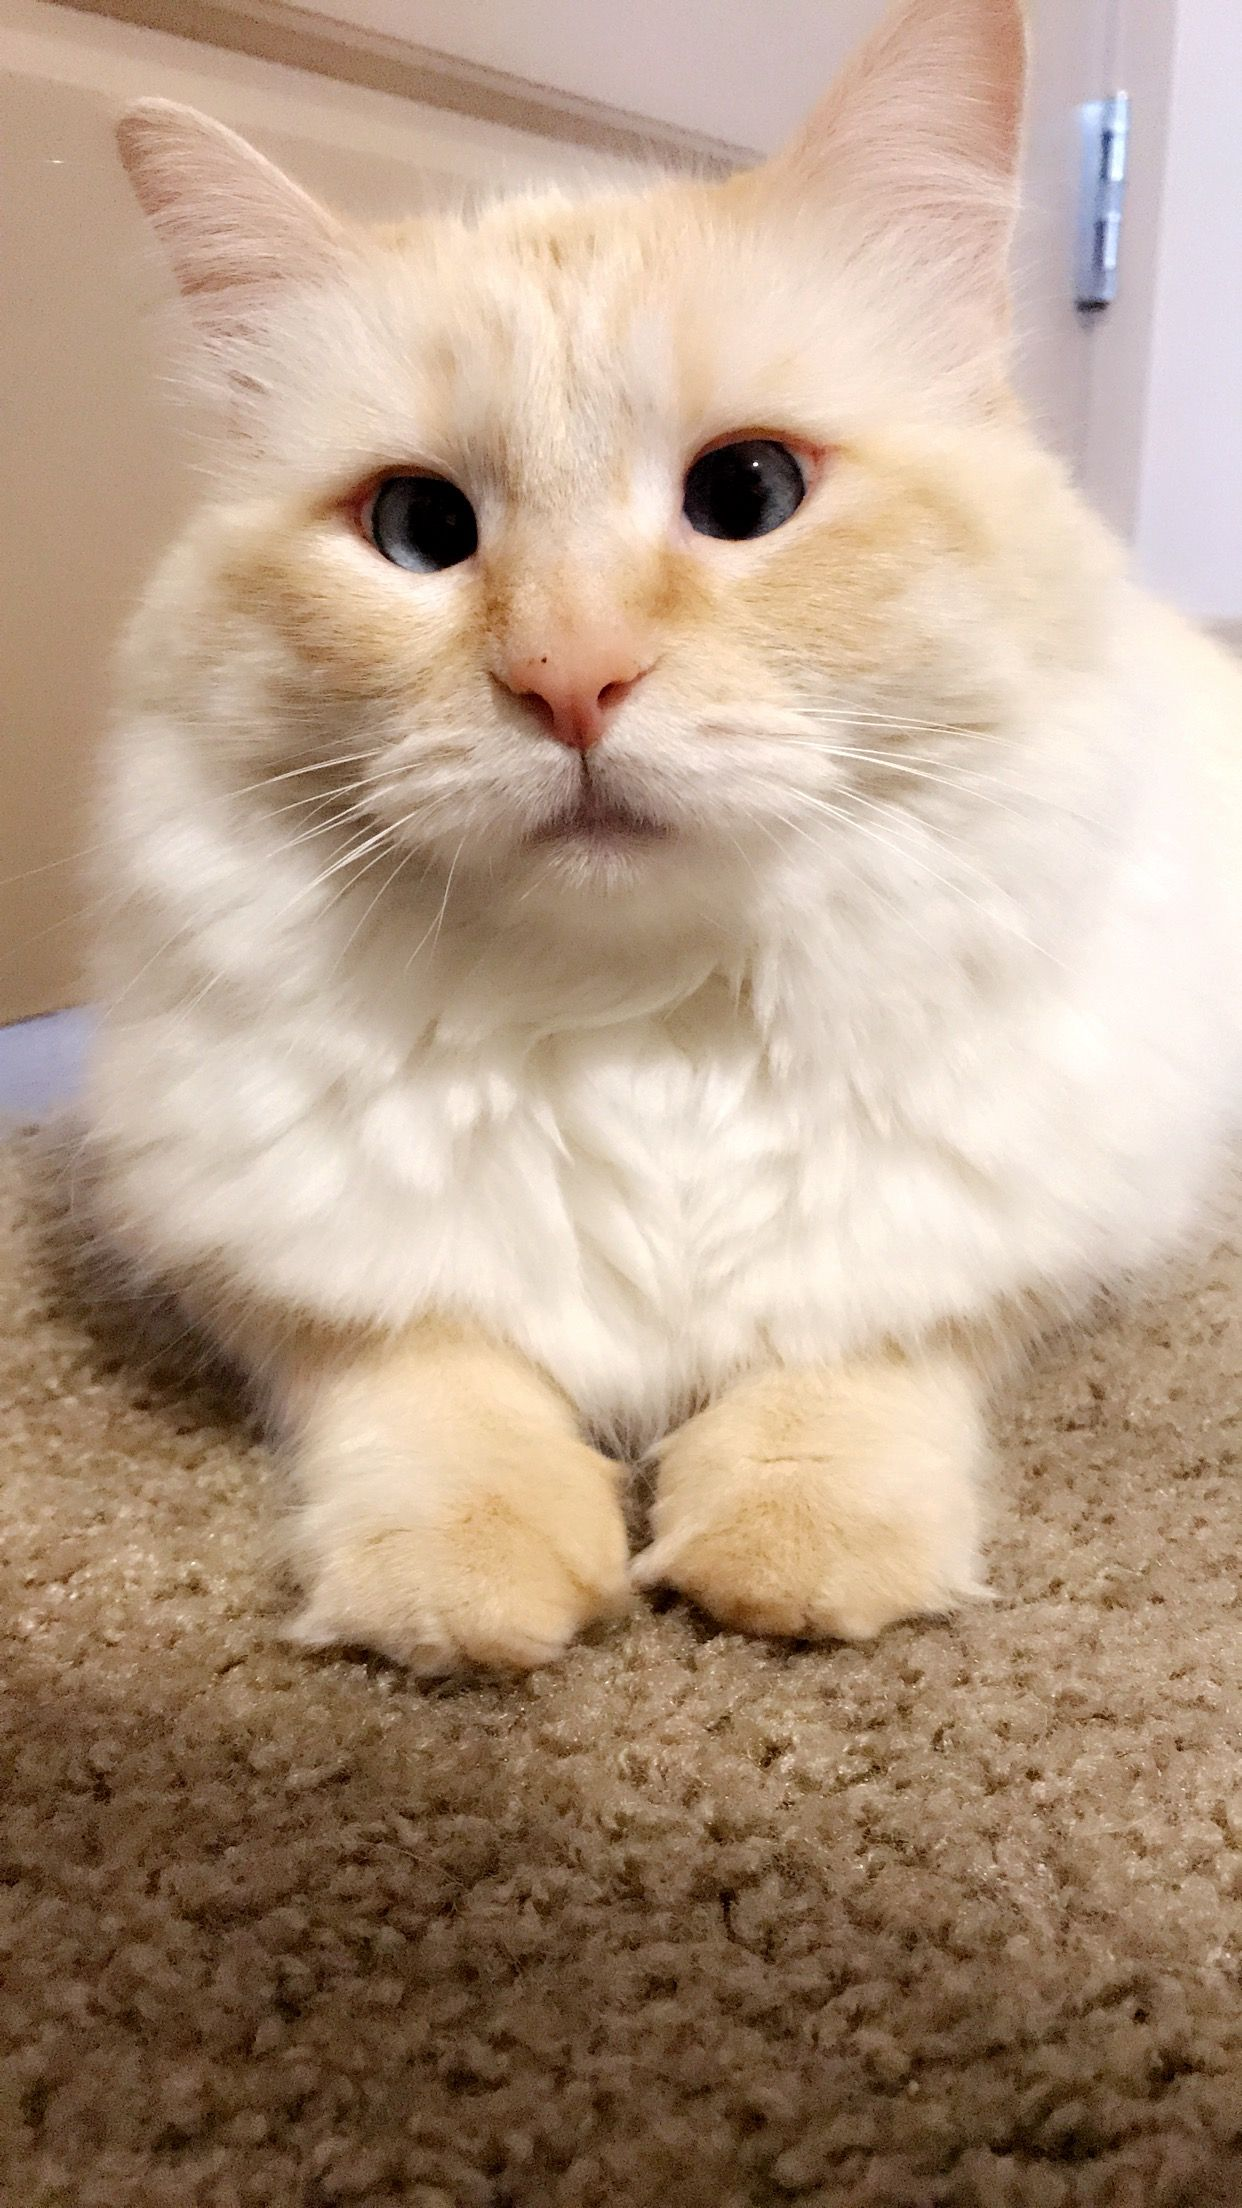 Pin By Dixie Leavitt On Bella The Cross Eyed Kitty Cat Furry Cute Cats Cute Cats And Kittens